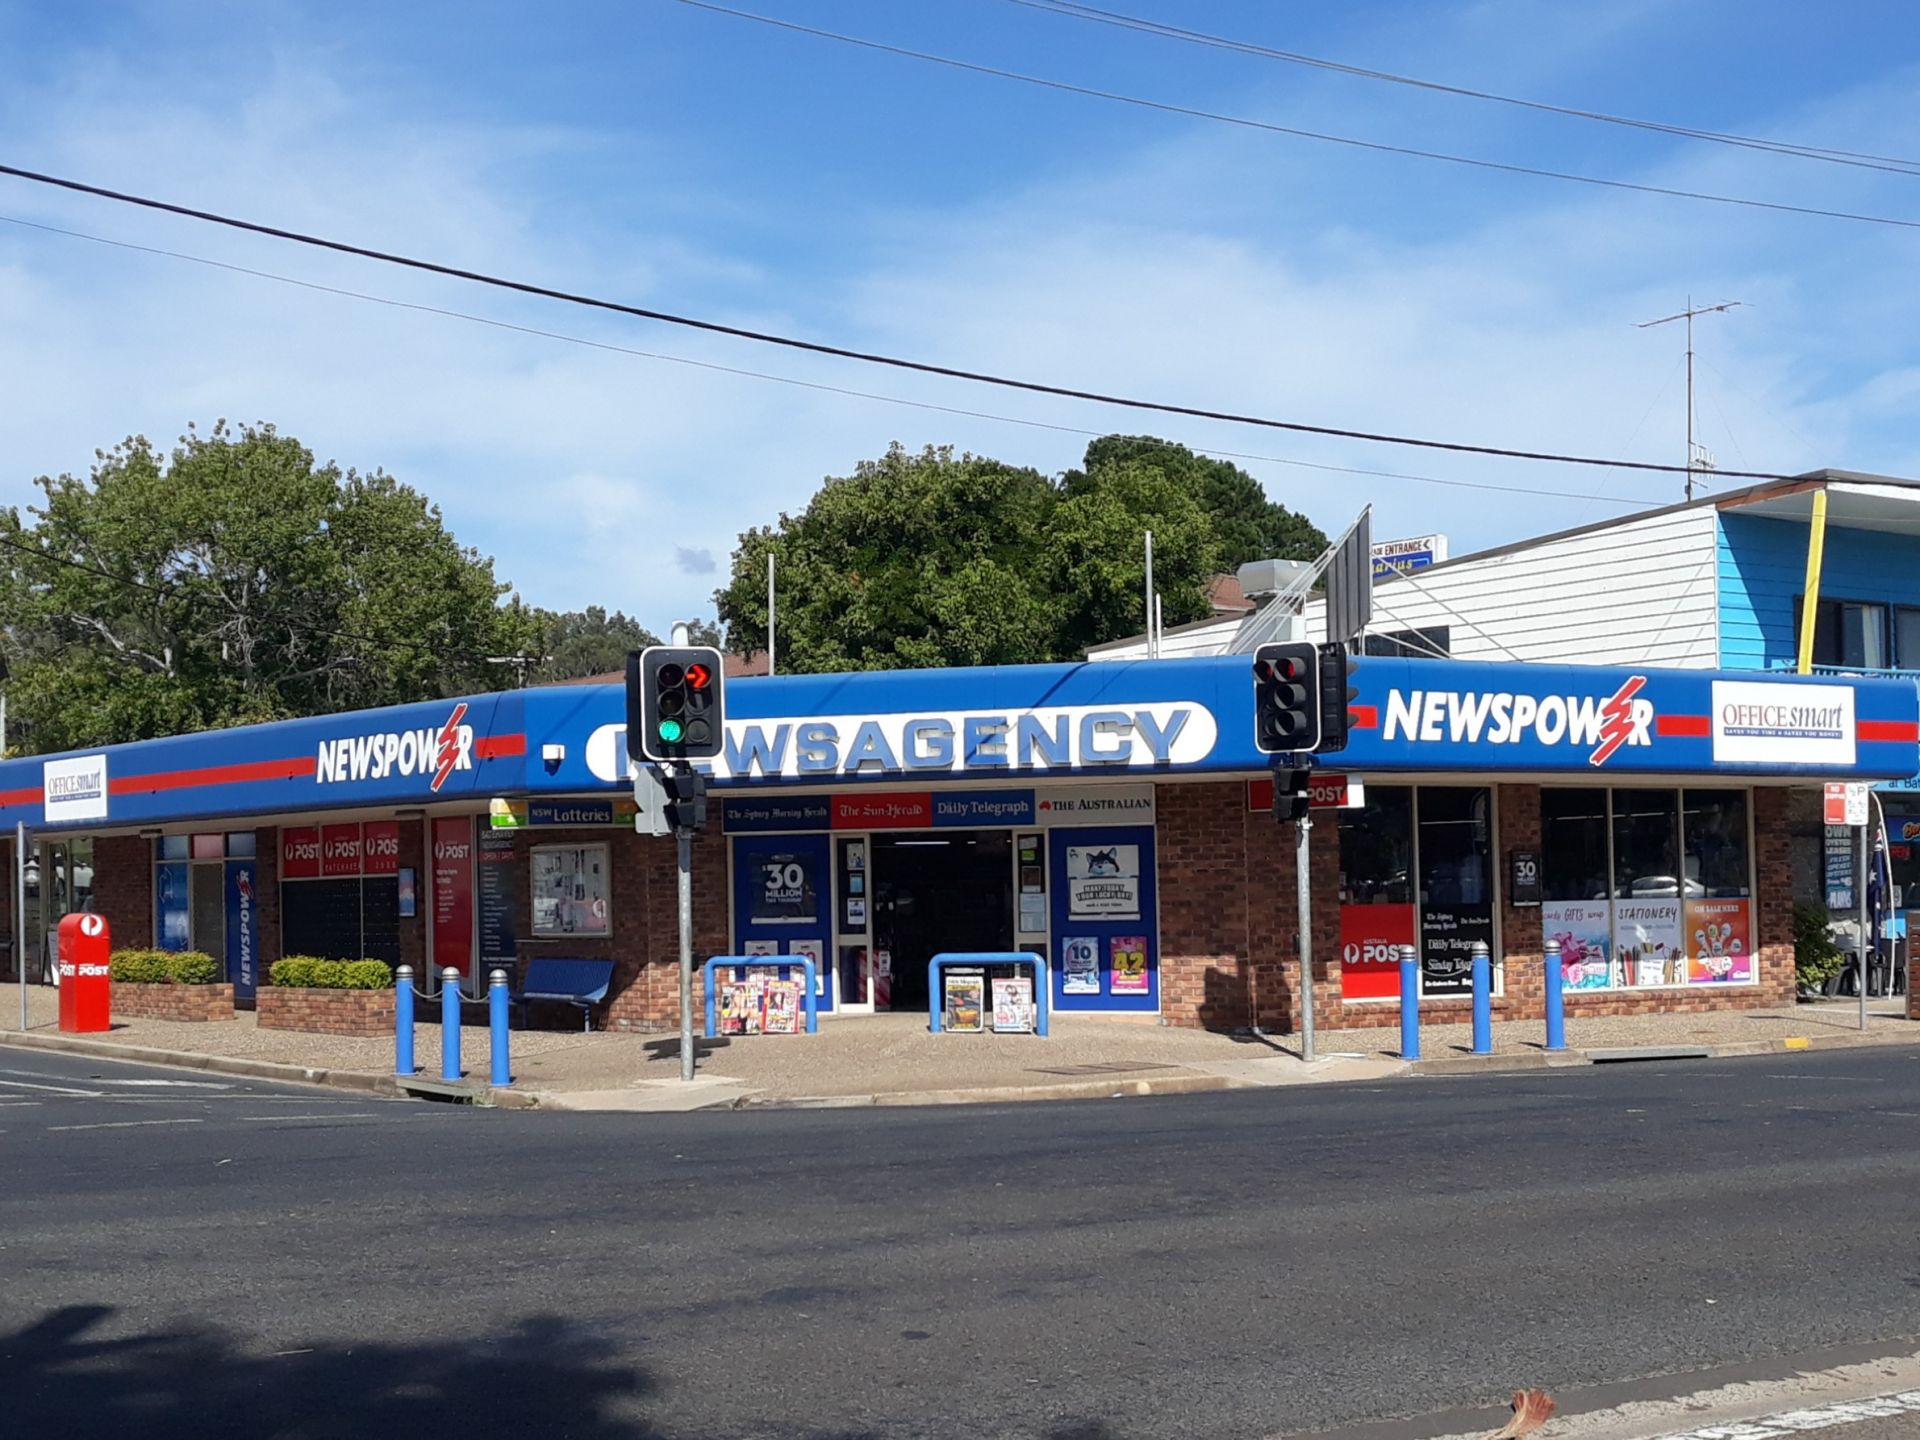 EXTREMELY PROFITABLE NEWSAGENCY WITH LOTTO, AUSTRALIA POST, GIFTS & STATIONERY